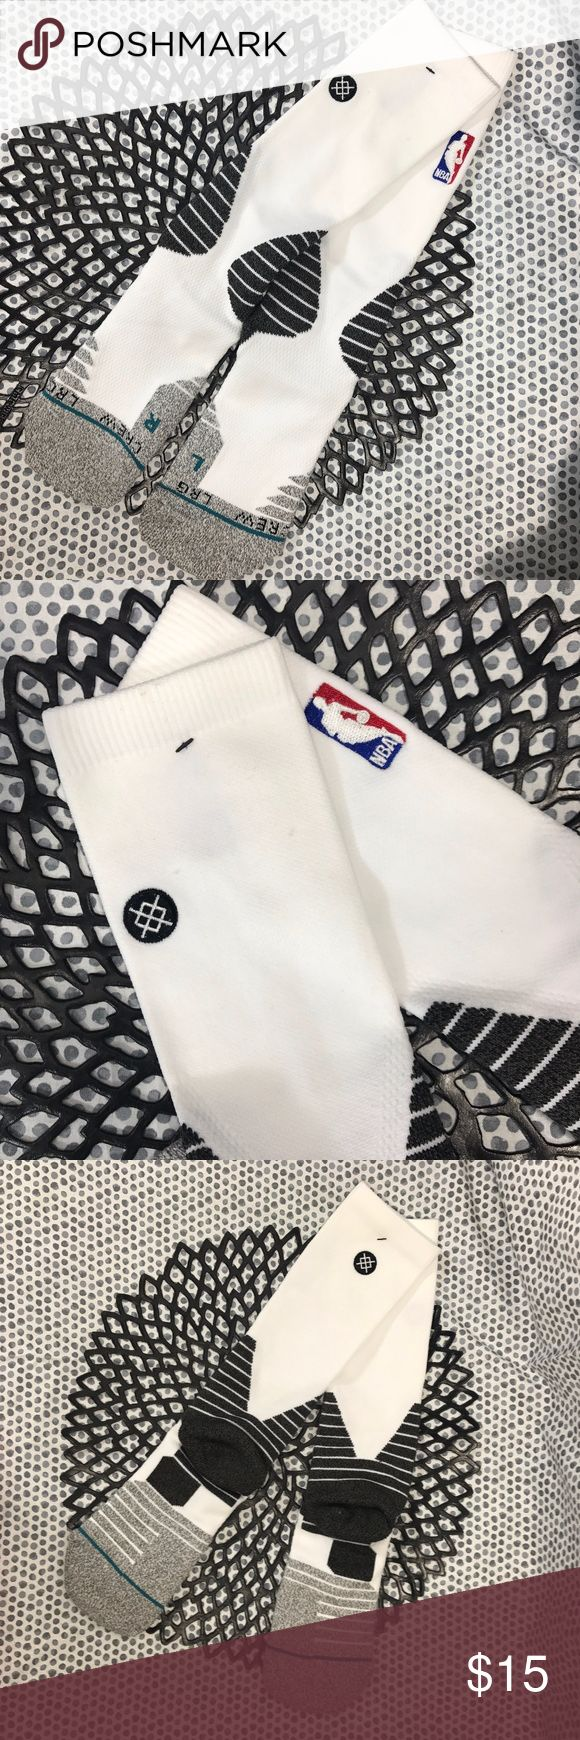 NEW Stance Men's NBA Logo White Long Crew Socks * NEW Stance Men's NBA Logo Basketball White Socks QTR Long Crew Socks * Size Large * New with tags and never worn! Stance Underwear & Socks Athletic Socks